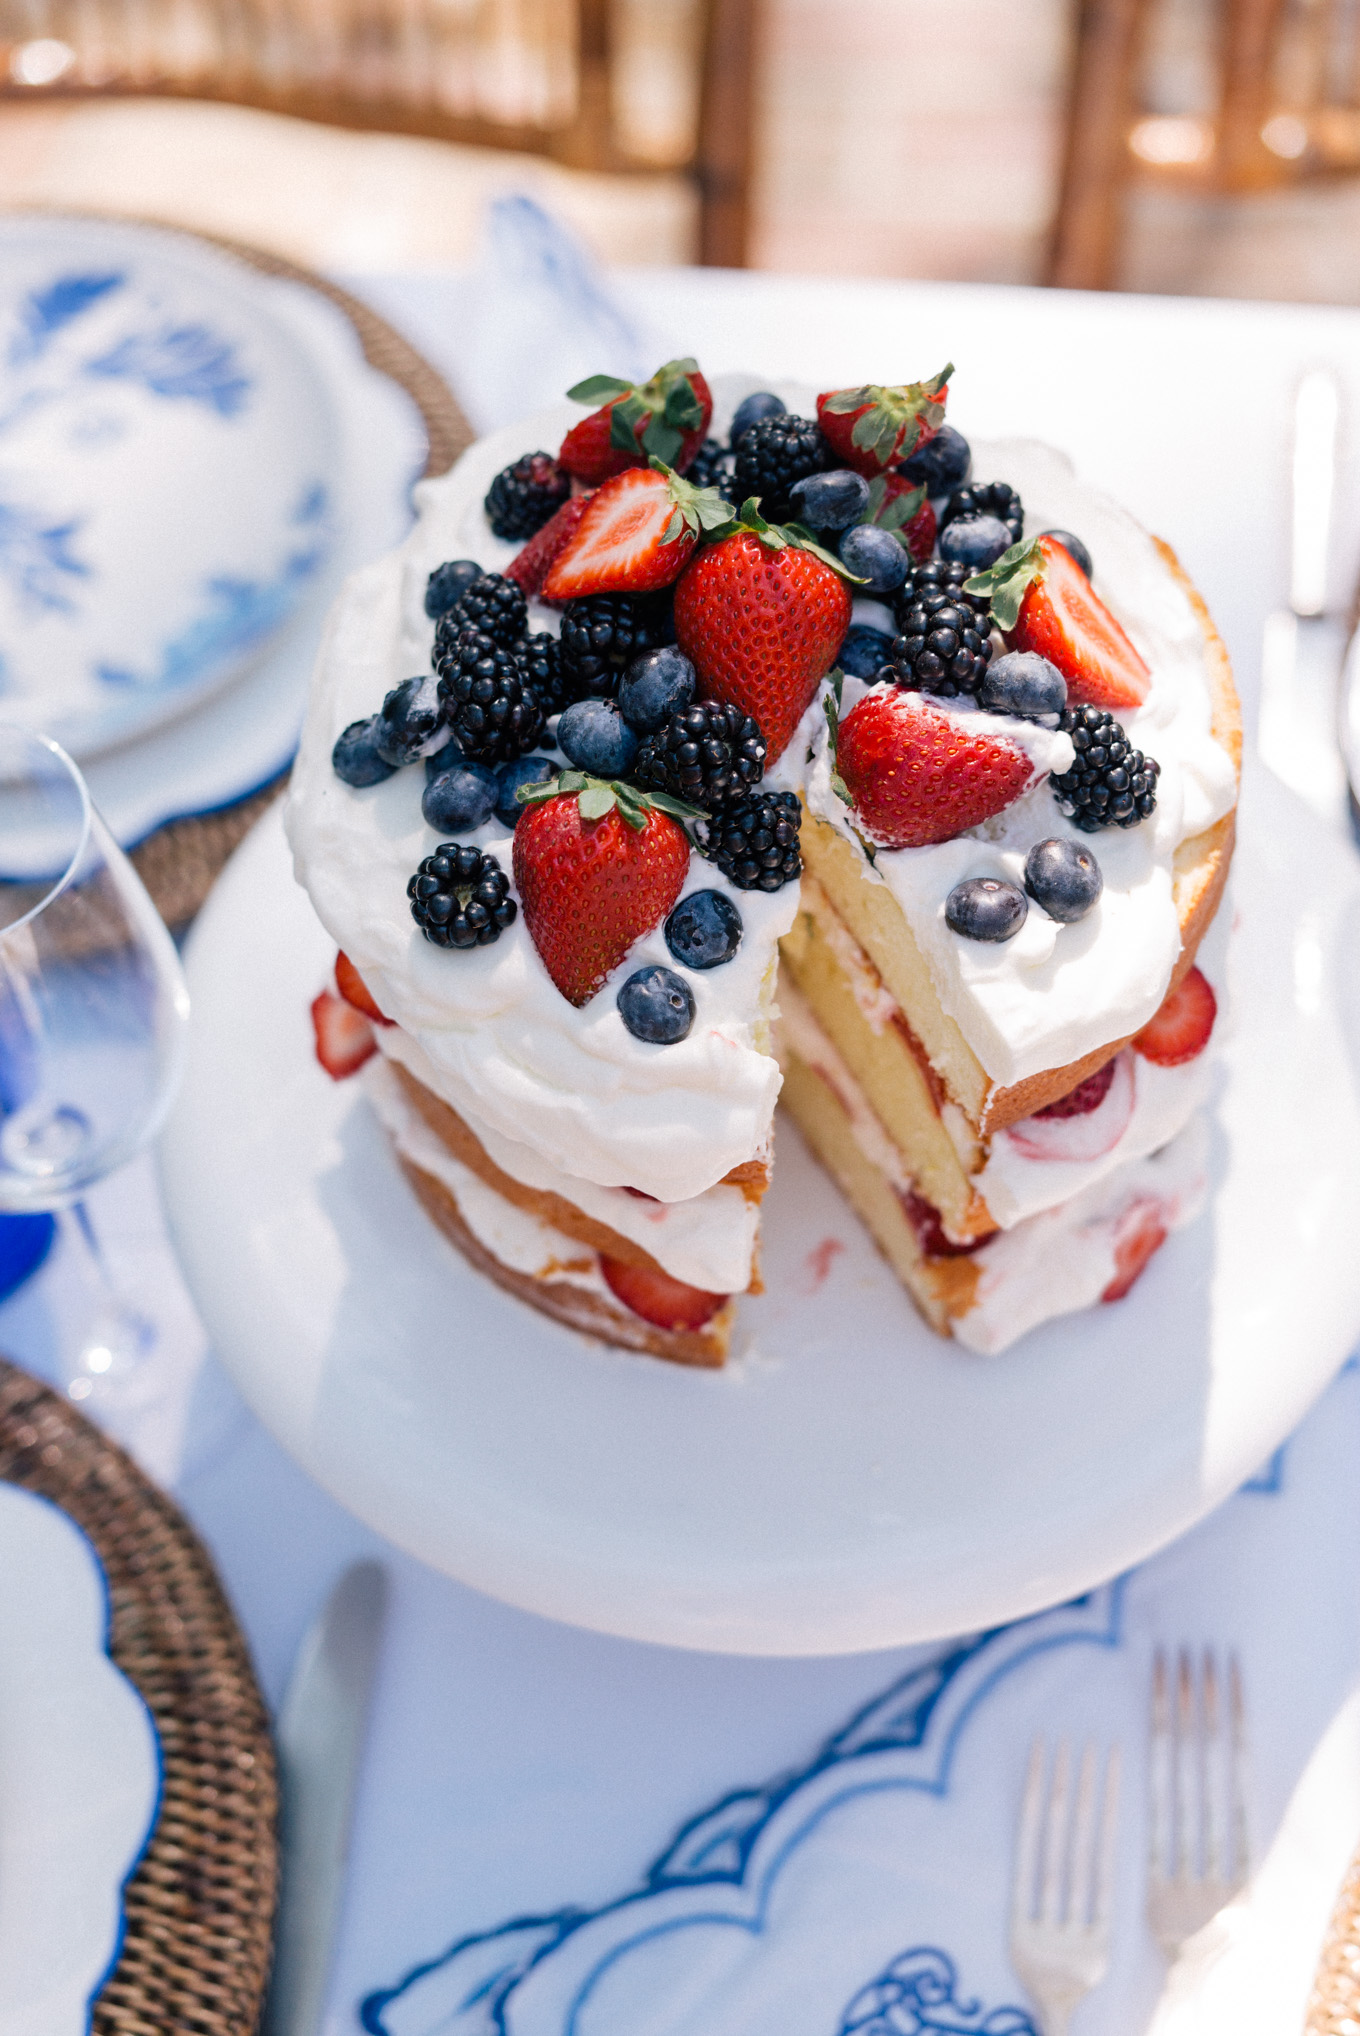 gmg-three-desserts-for-fourth-of-july-1009713